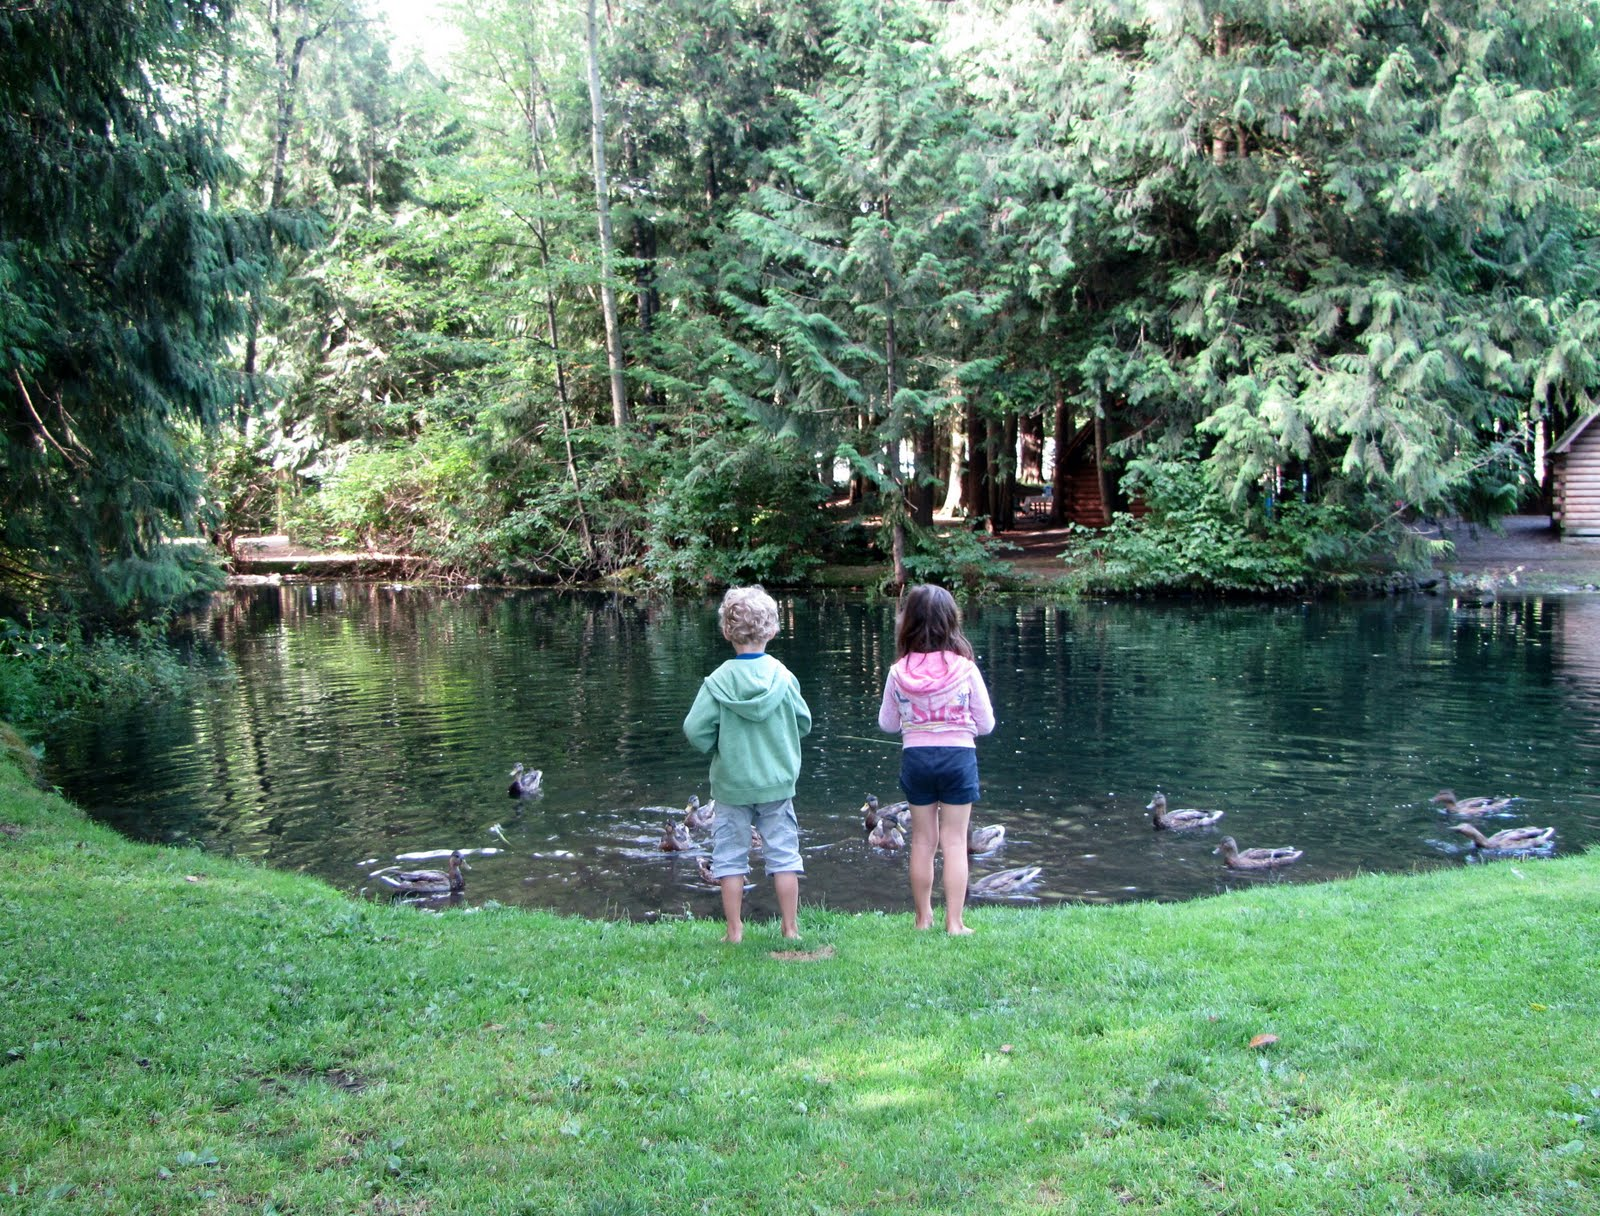 Does it get any cuter than this? Come on, ducks, kids, a pond, in the woods. The only thing missing is YOU!